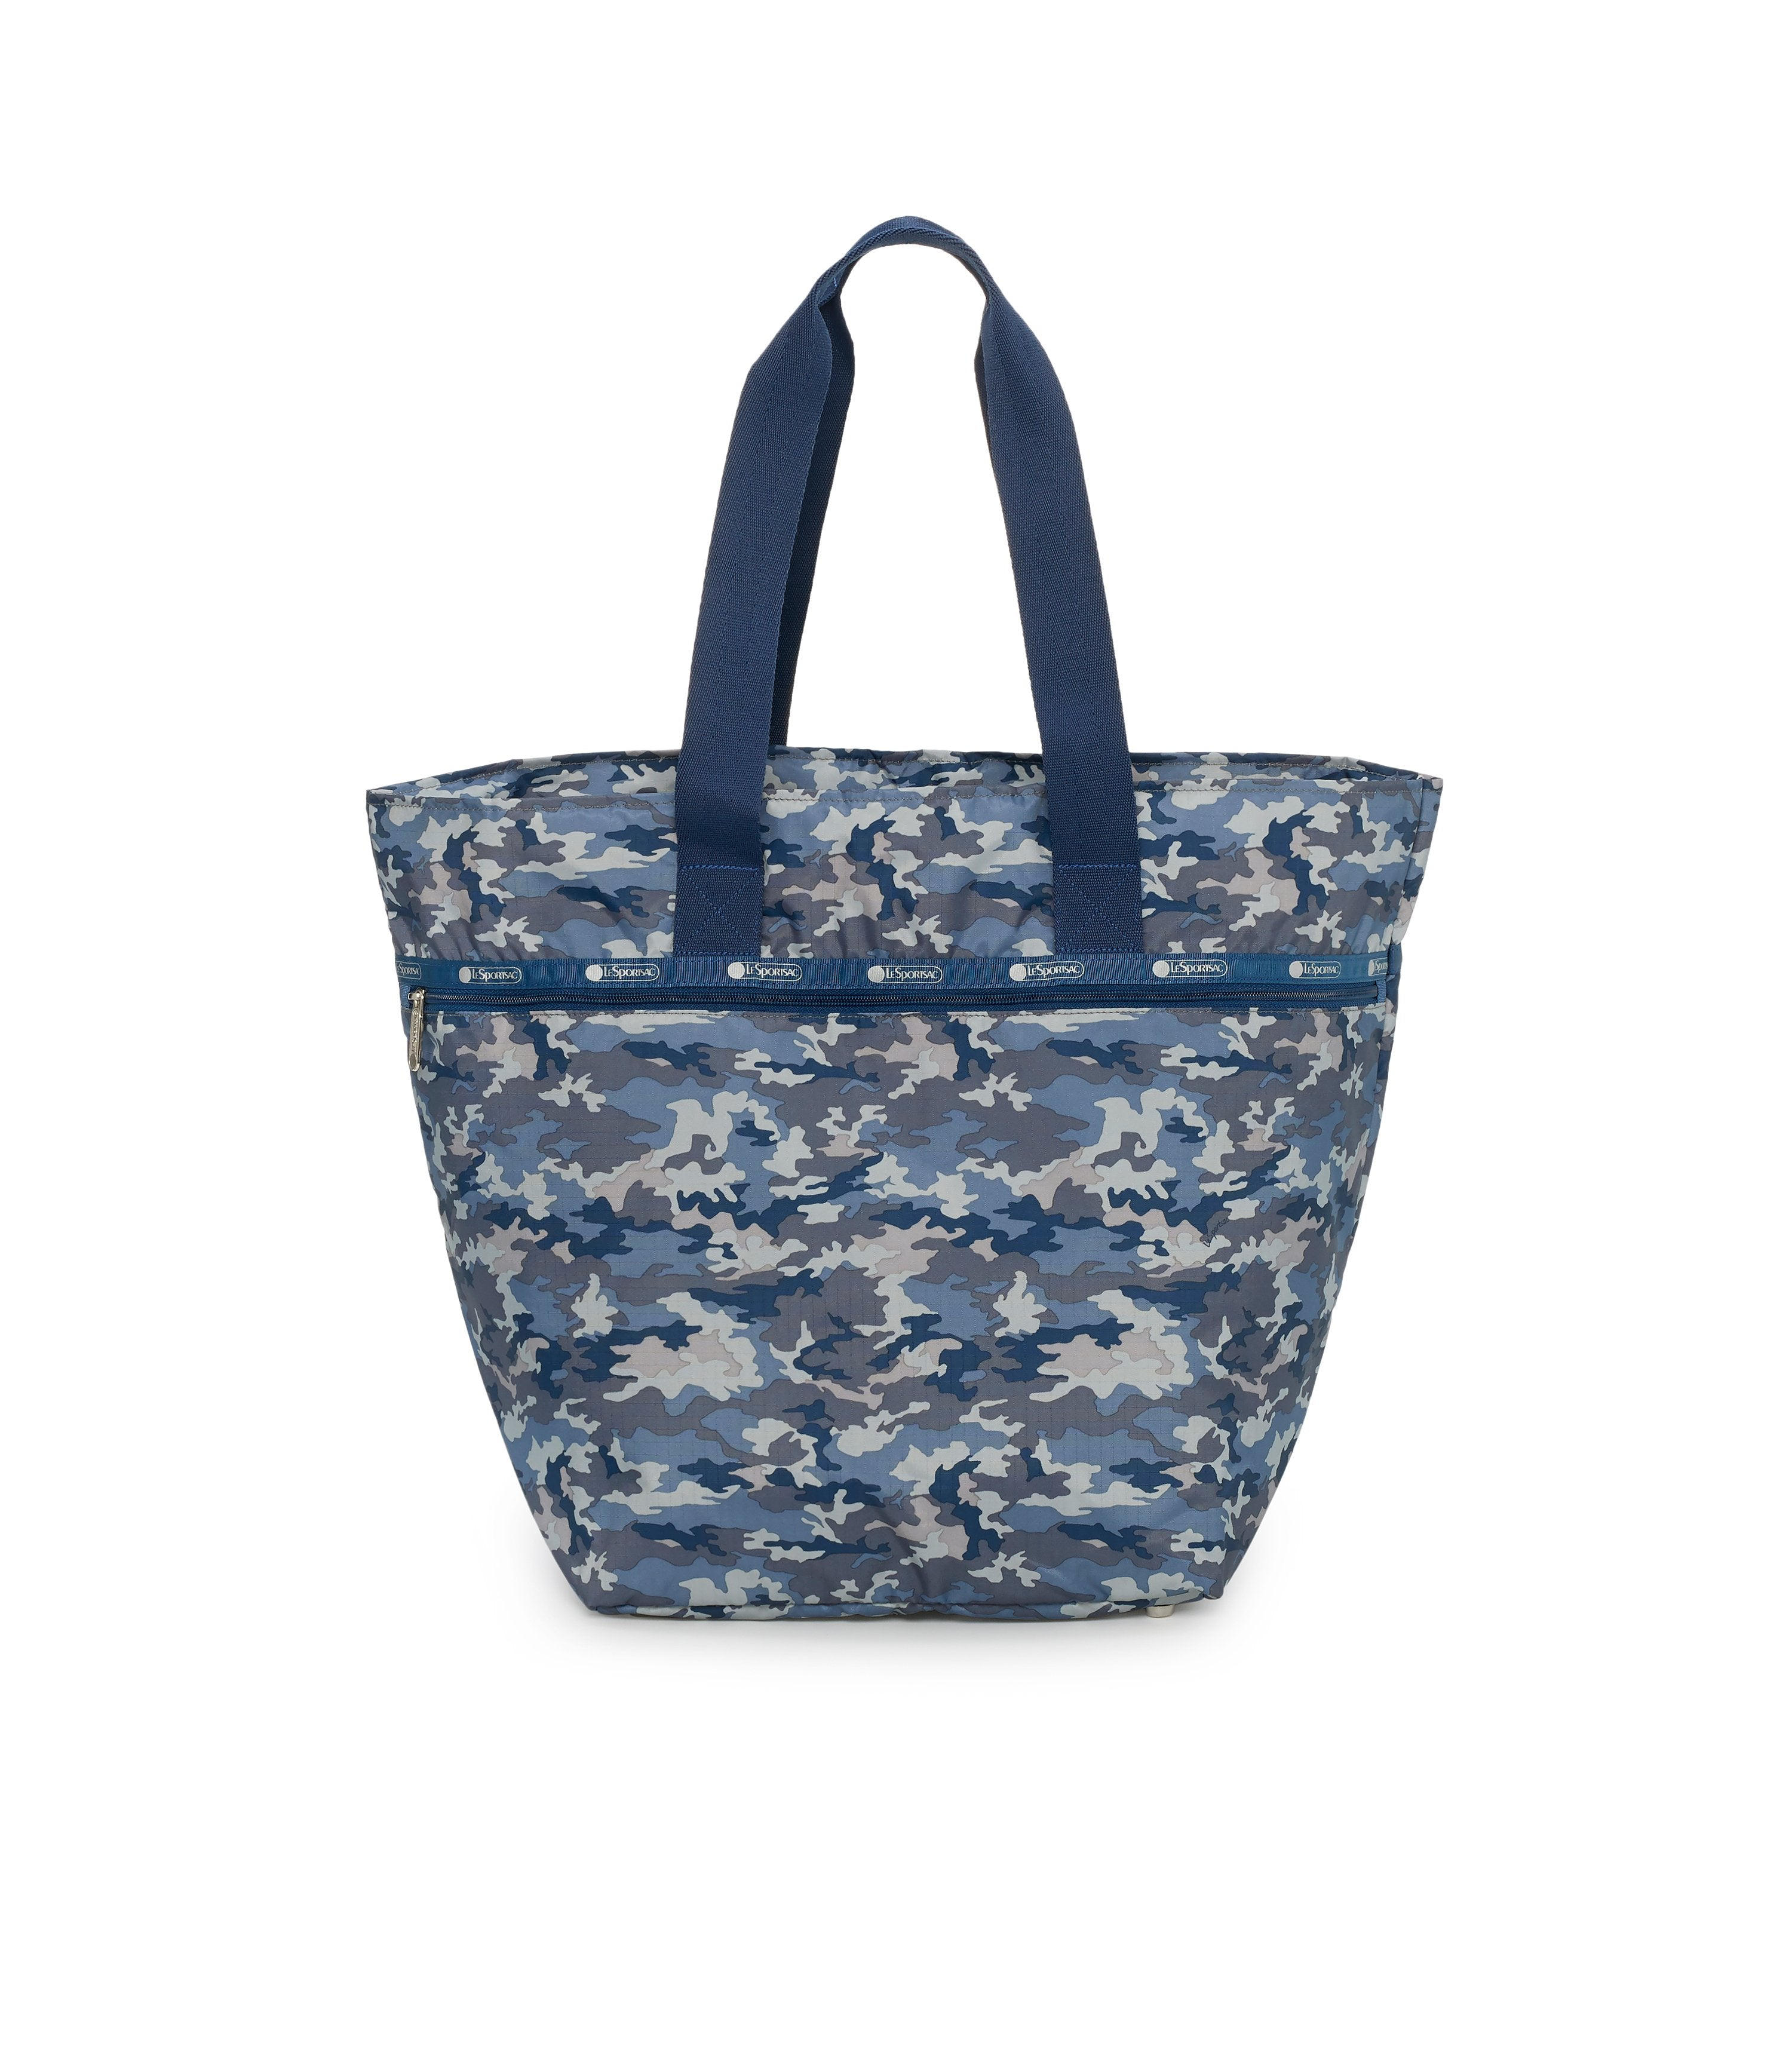 Large Elle Tote, Nylon Tote Bags, Carry-on, LeSportsac, Camo Blues print